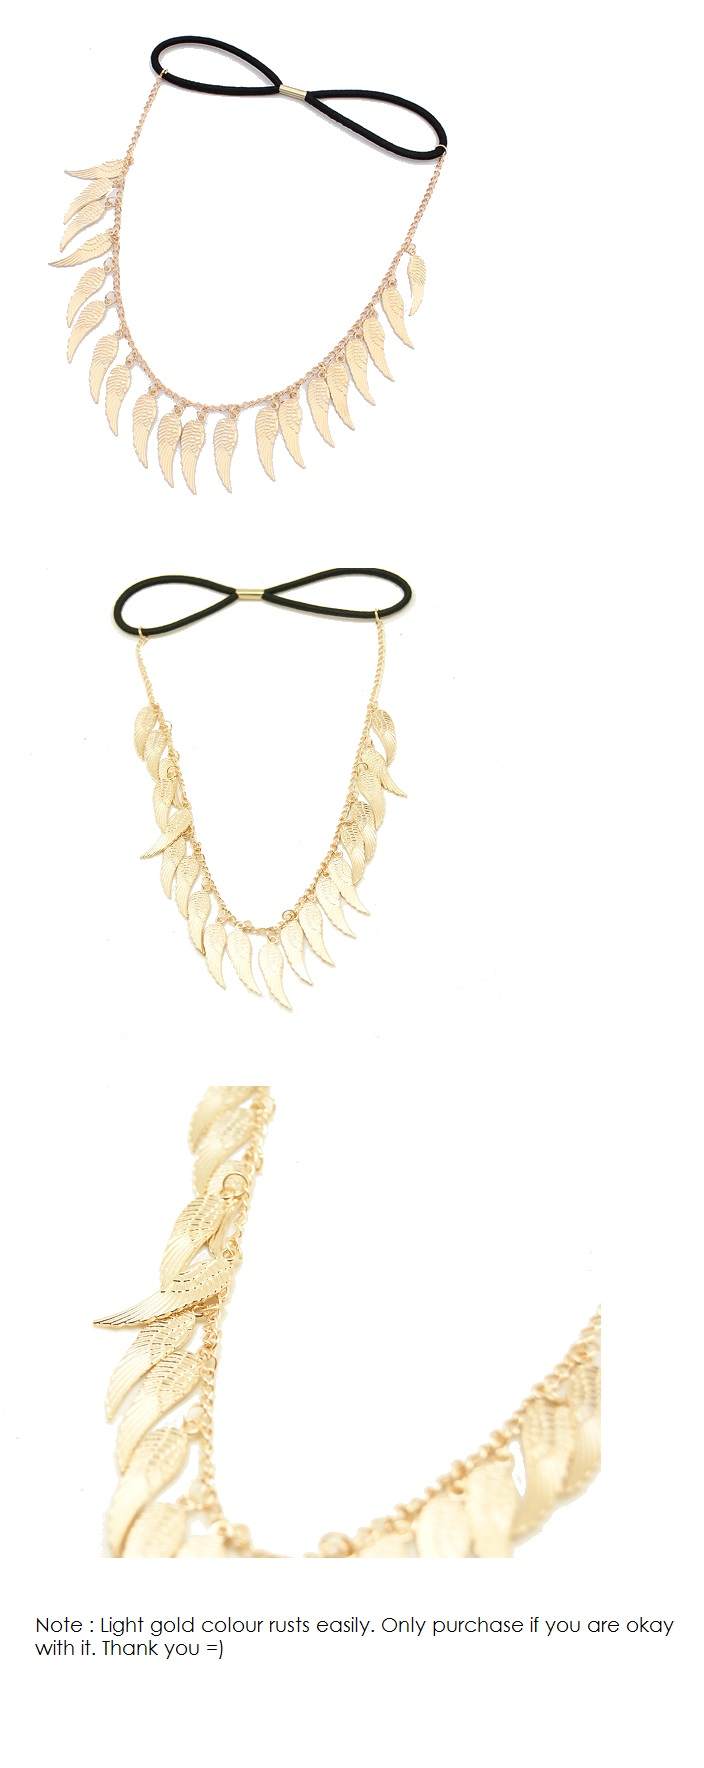 P107078 Wing dangling gold elastic headband accessories shop